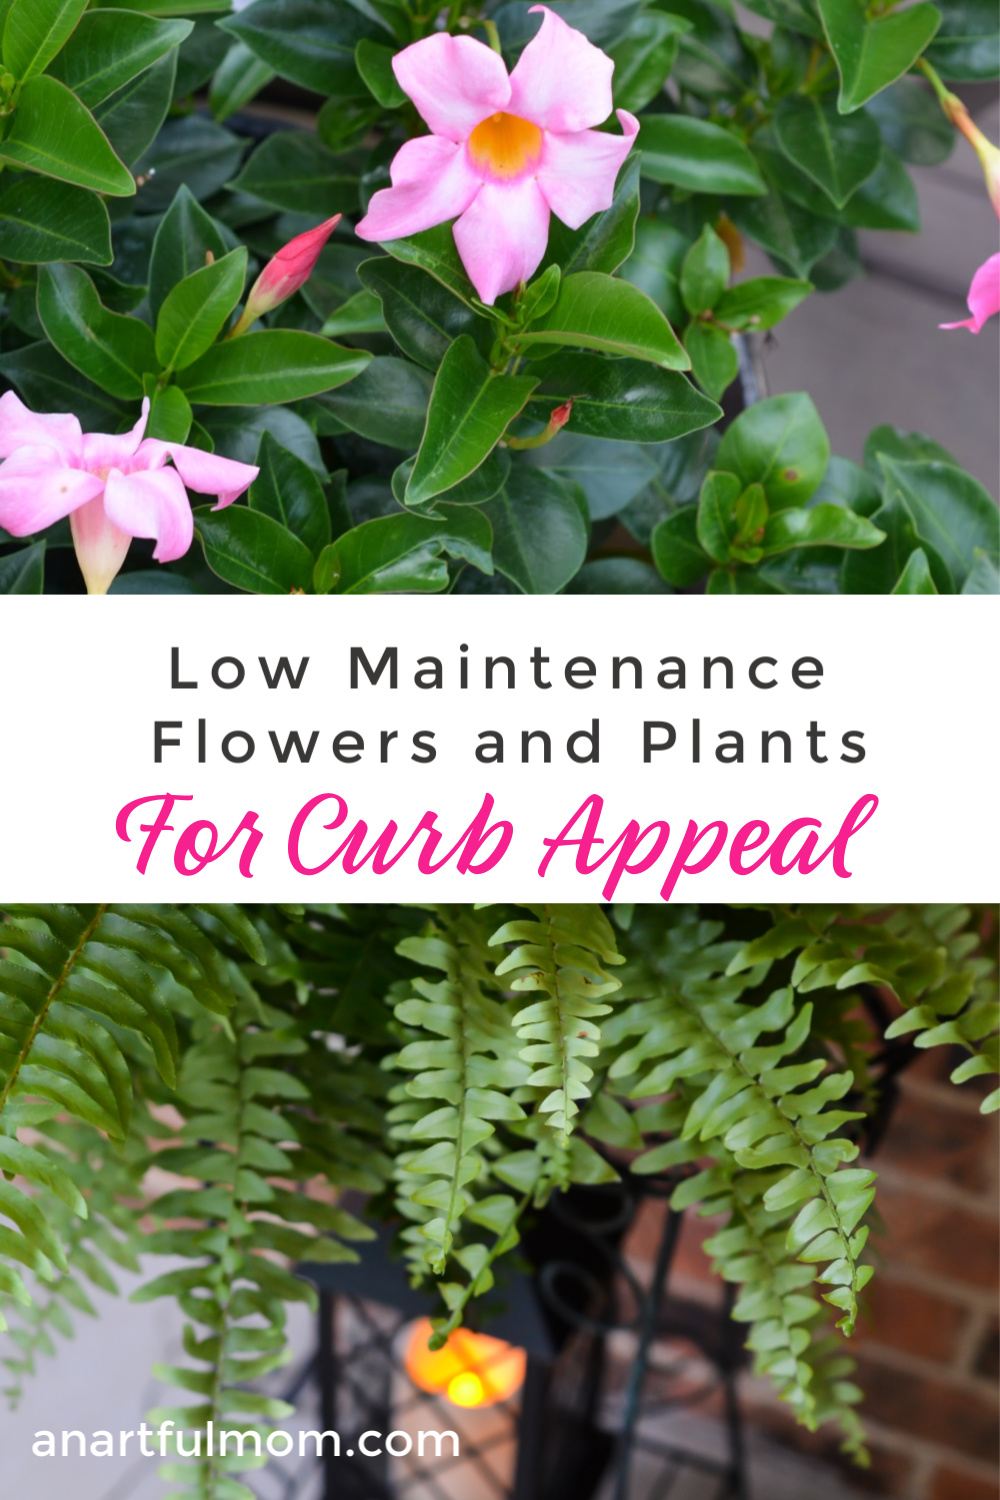 Low maintenance flowers and plants